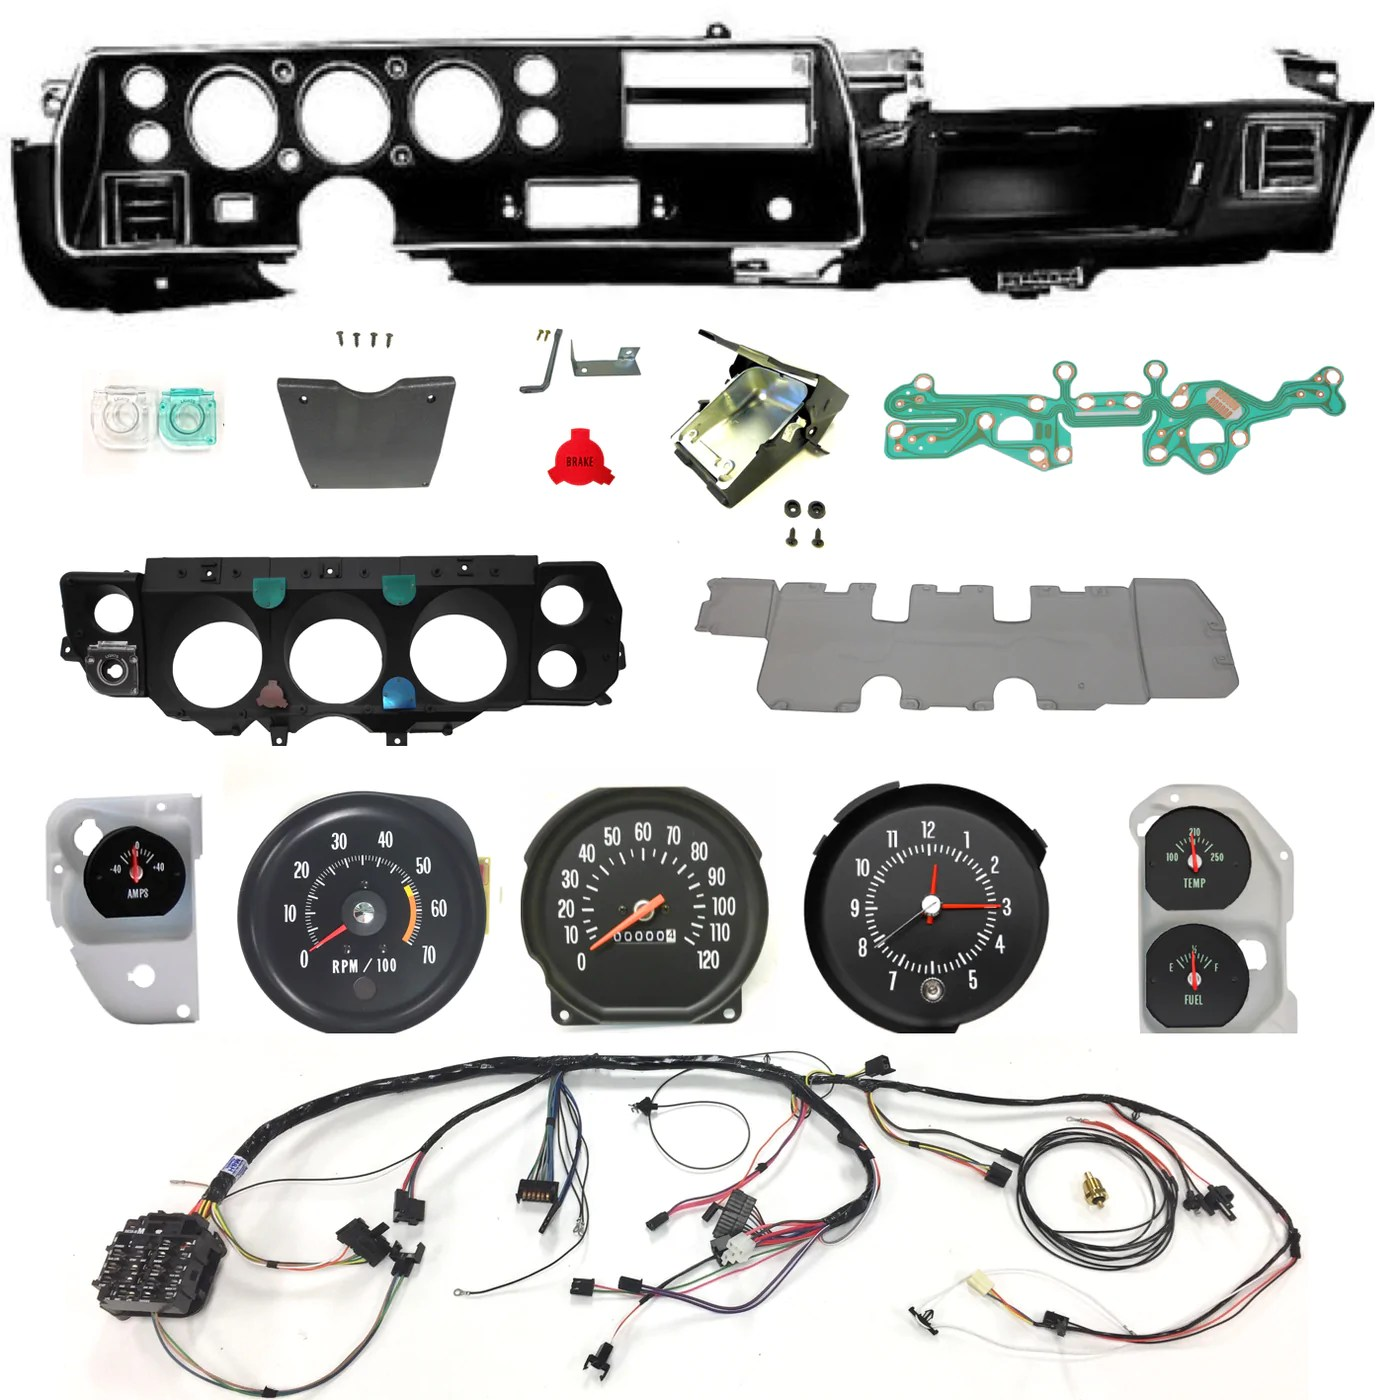 hight resolution of 1971 chevelle ss dash conversion kit el camino super sport floor chevelle dash wiring harness main for cars with factory gauges 1970